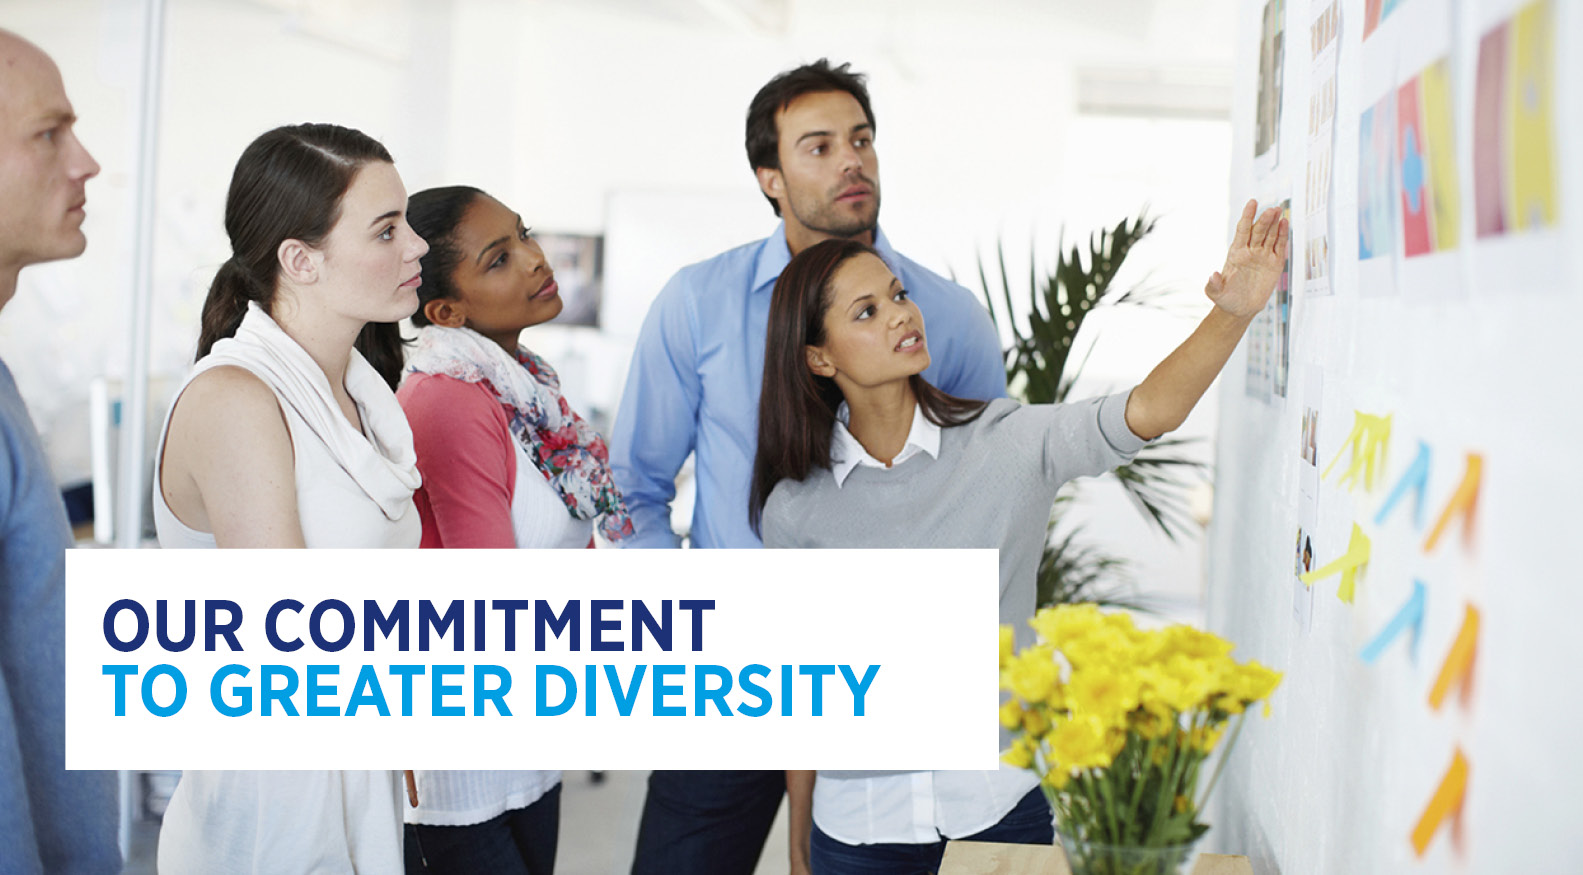 Our commitment to greater diversity